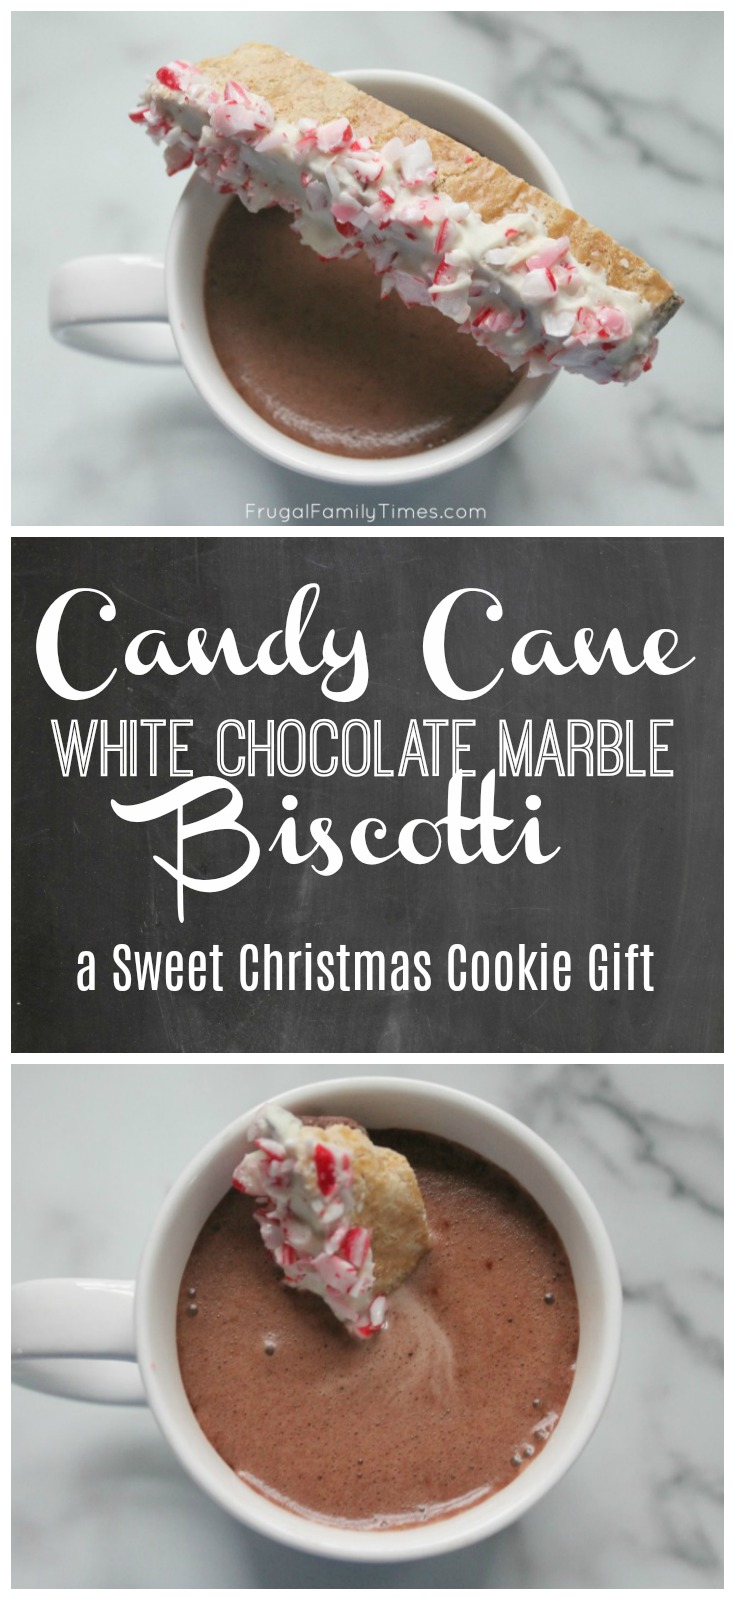 Candy Cane White Chocolate Marble Biscotti